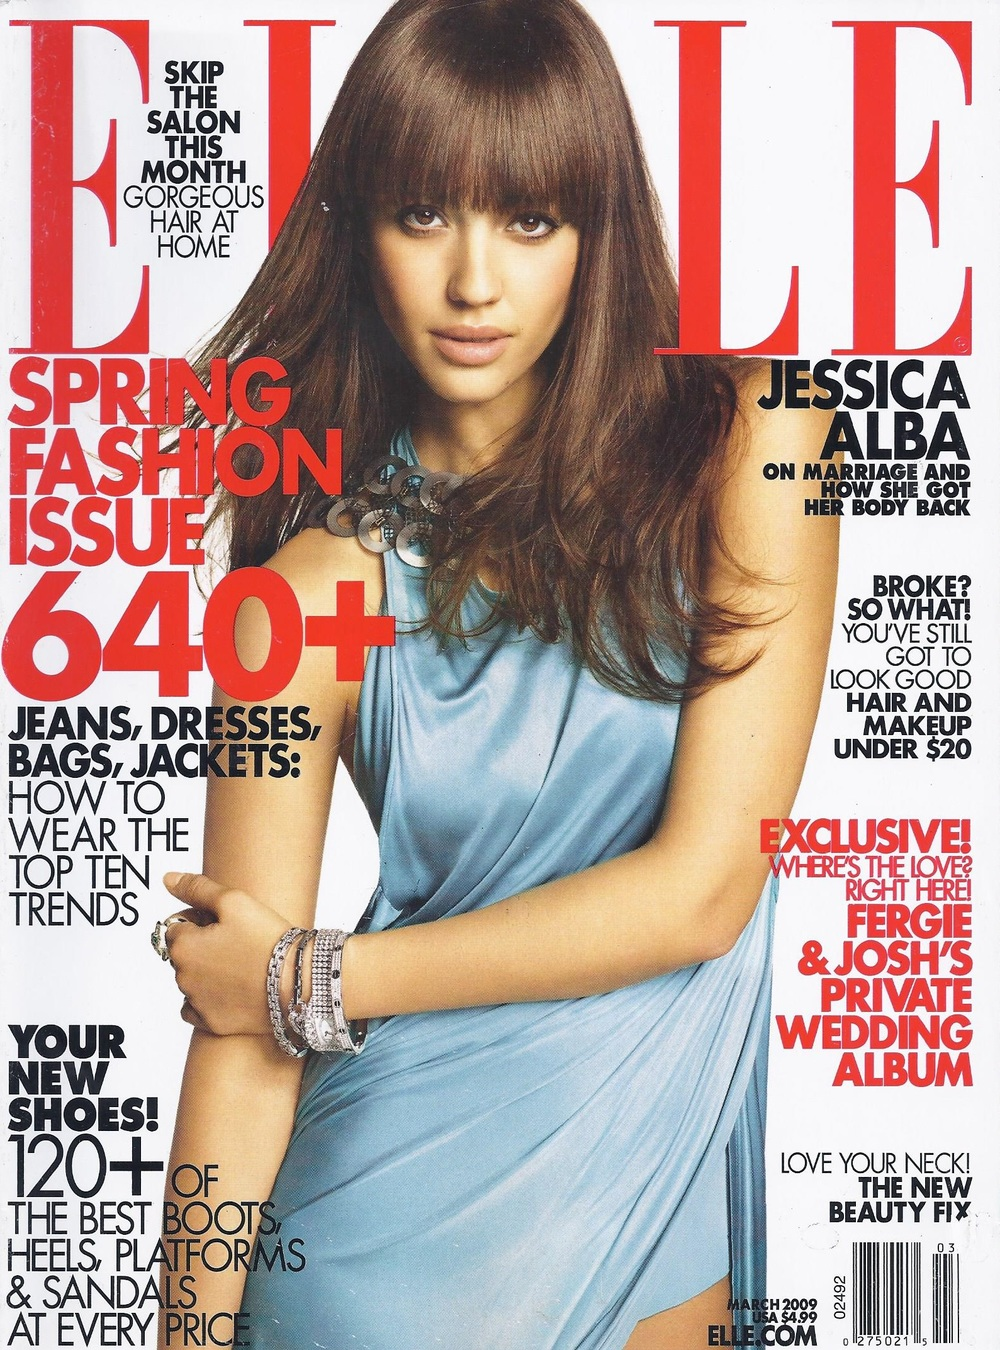 Elle Magazine Cover March 09.jpg